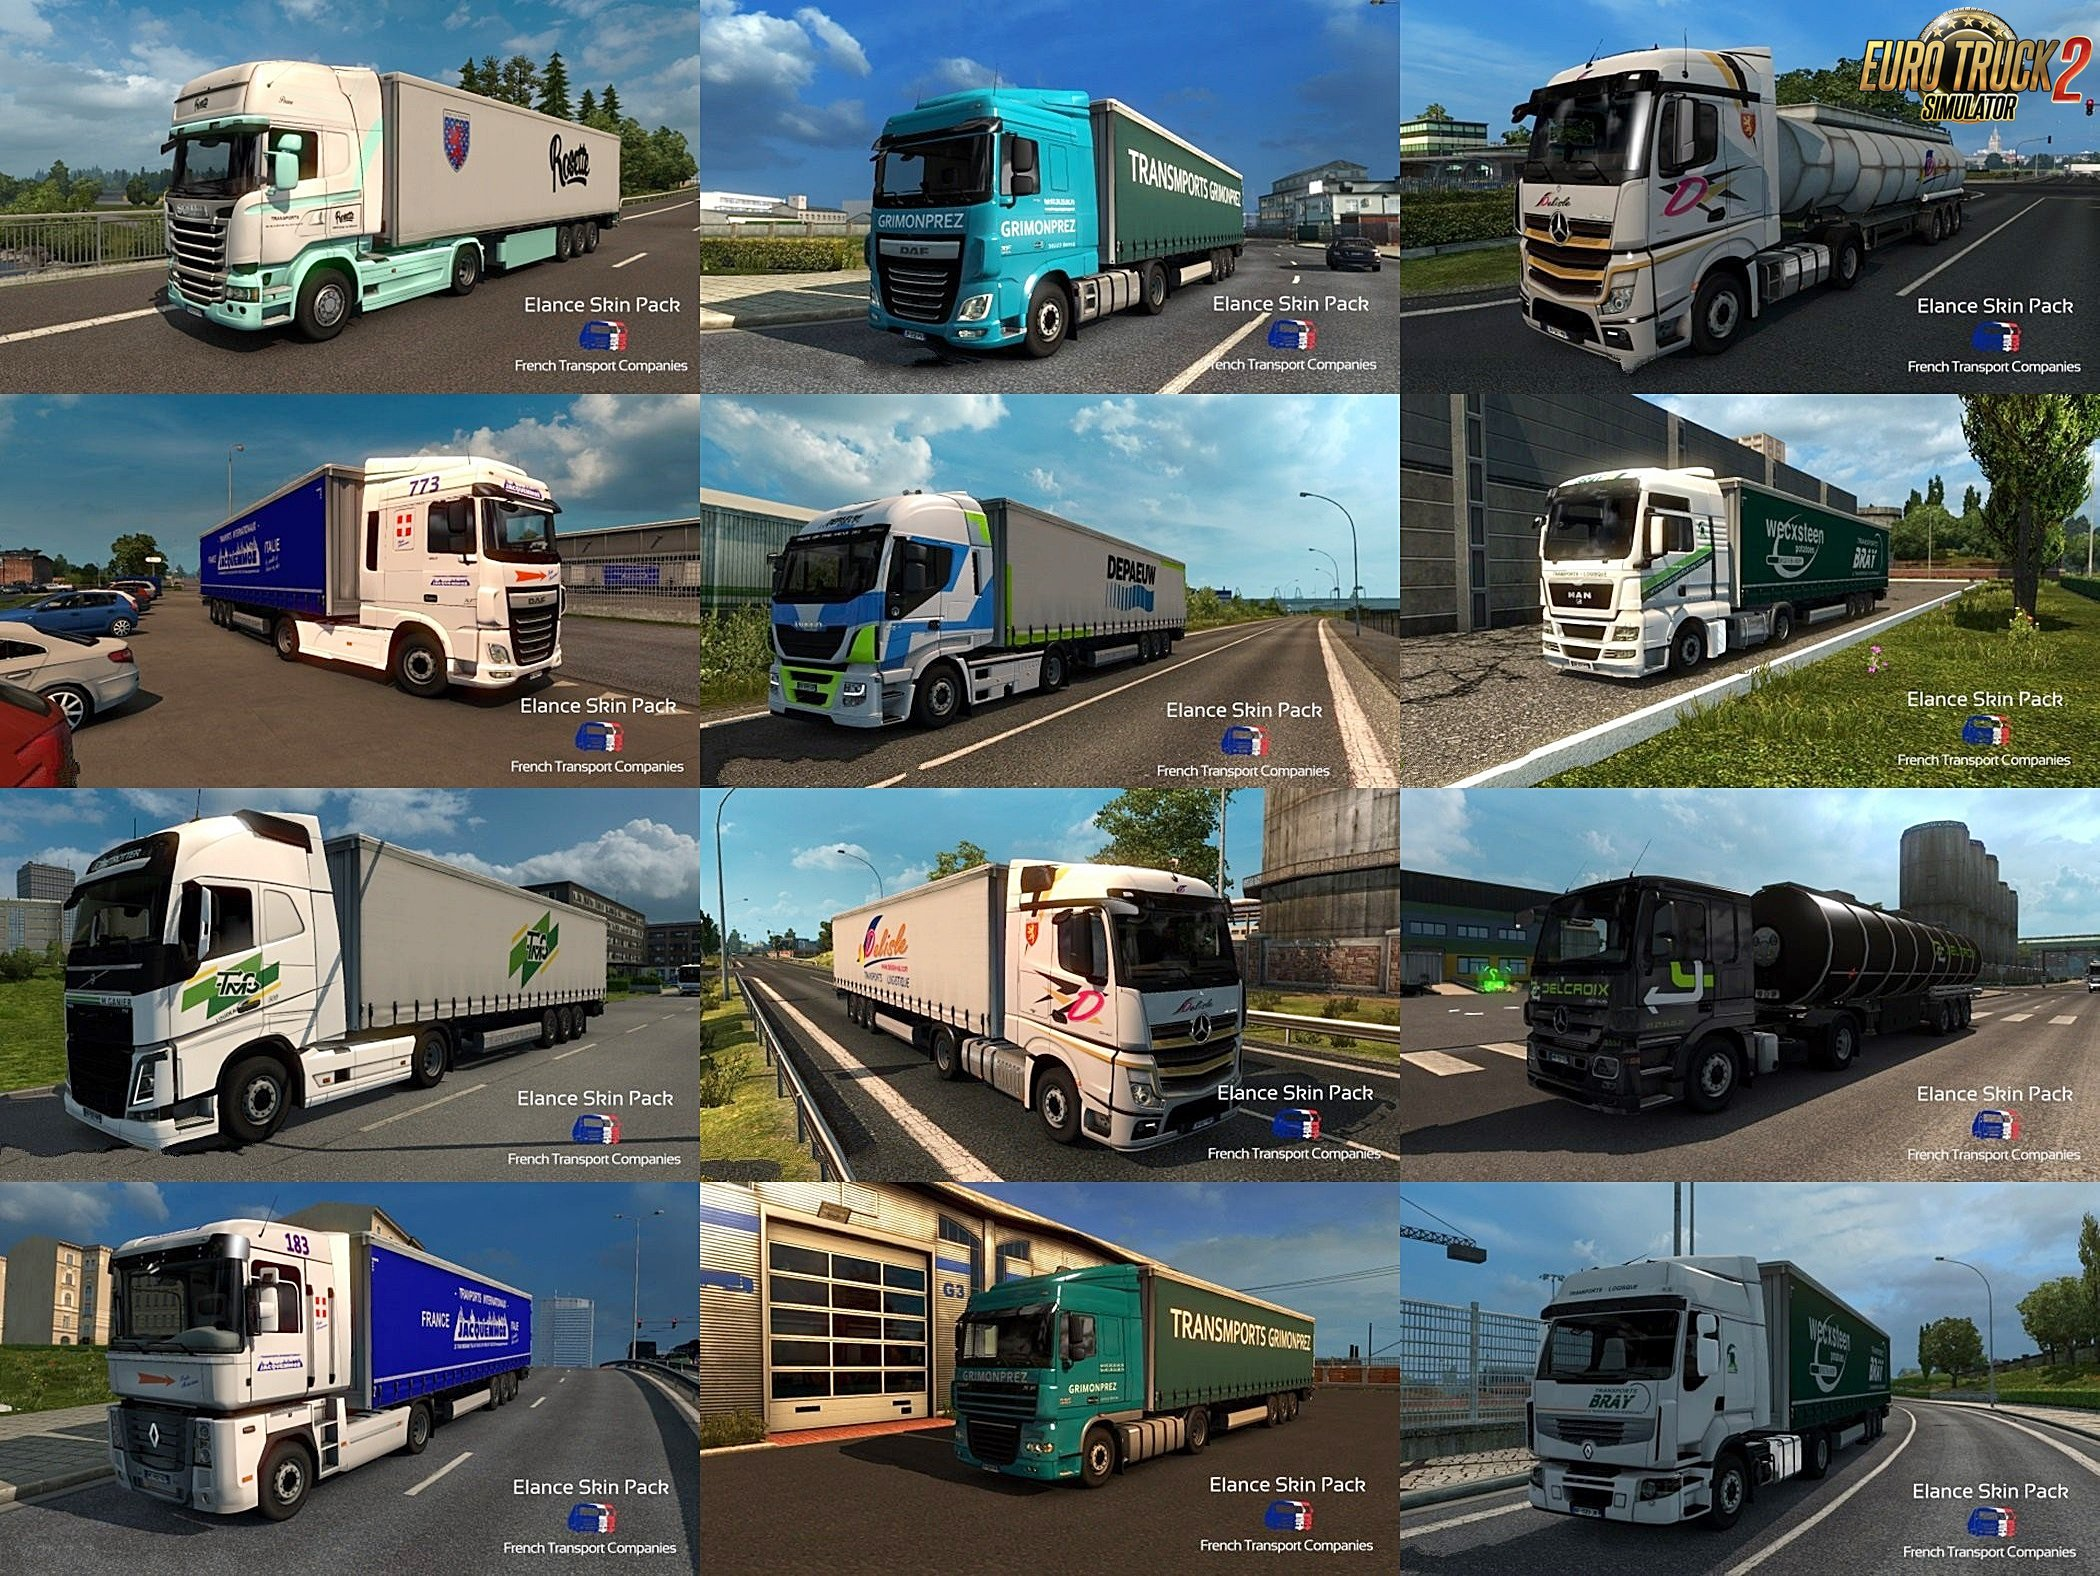 French Transport Companies SkinPack v1.0